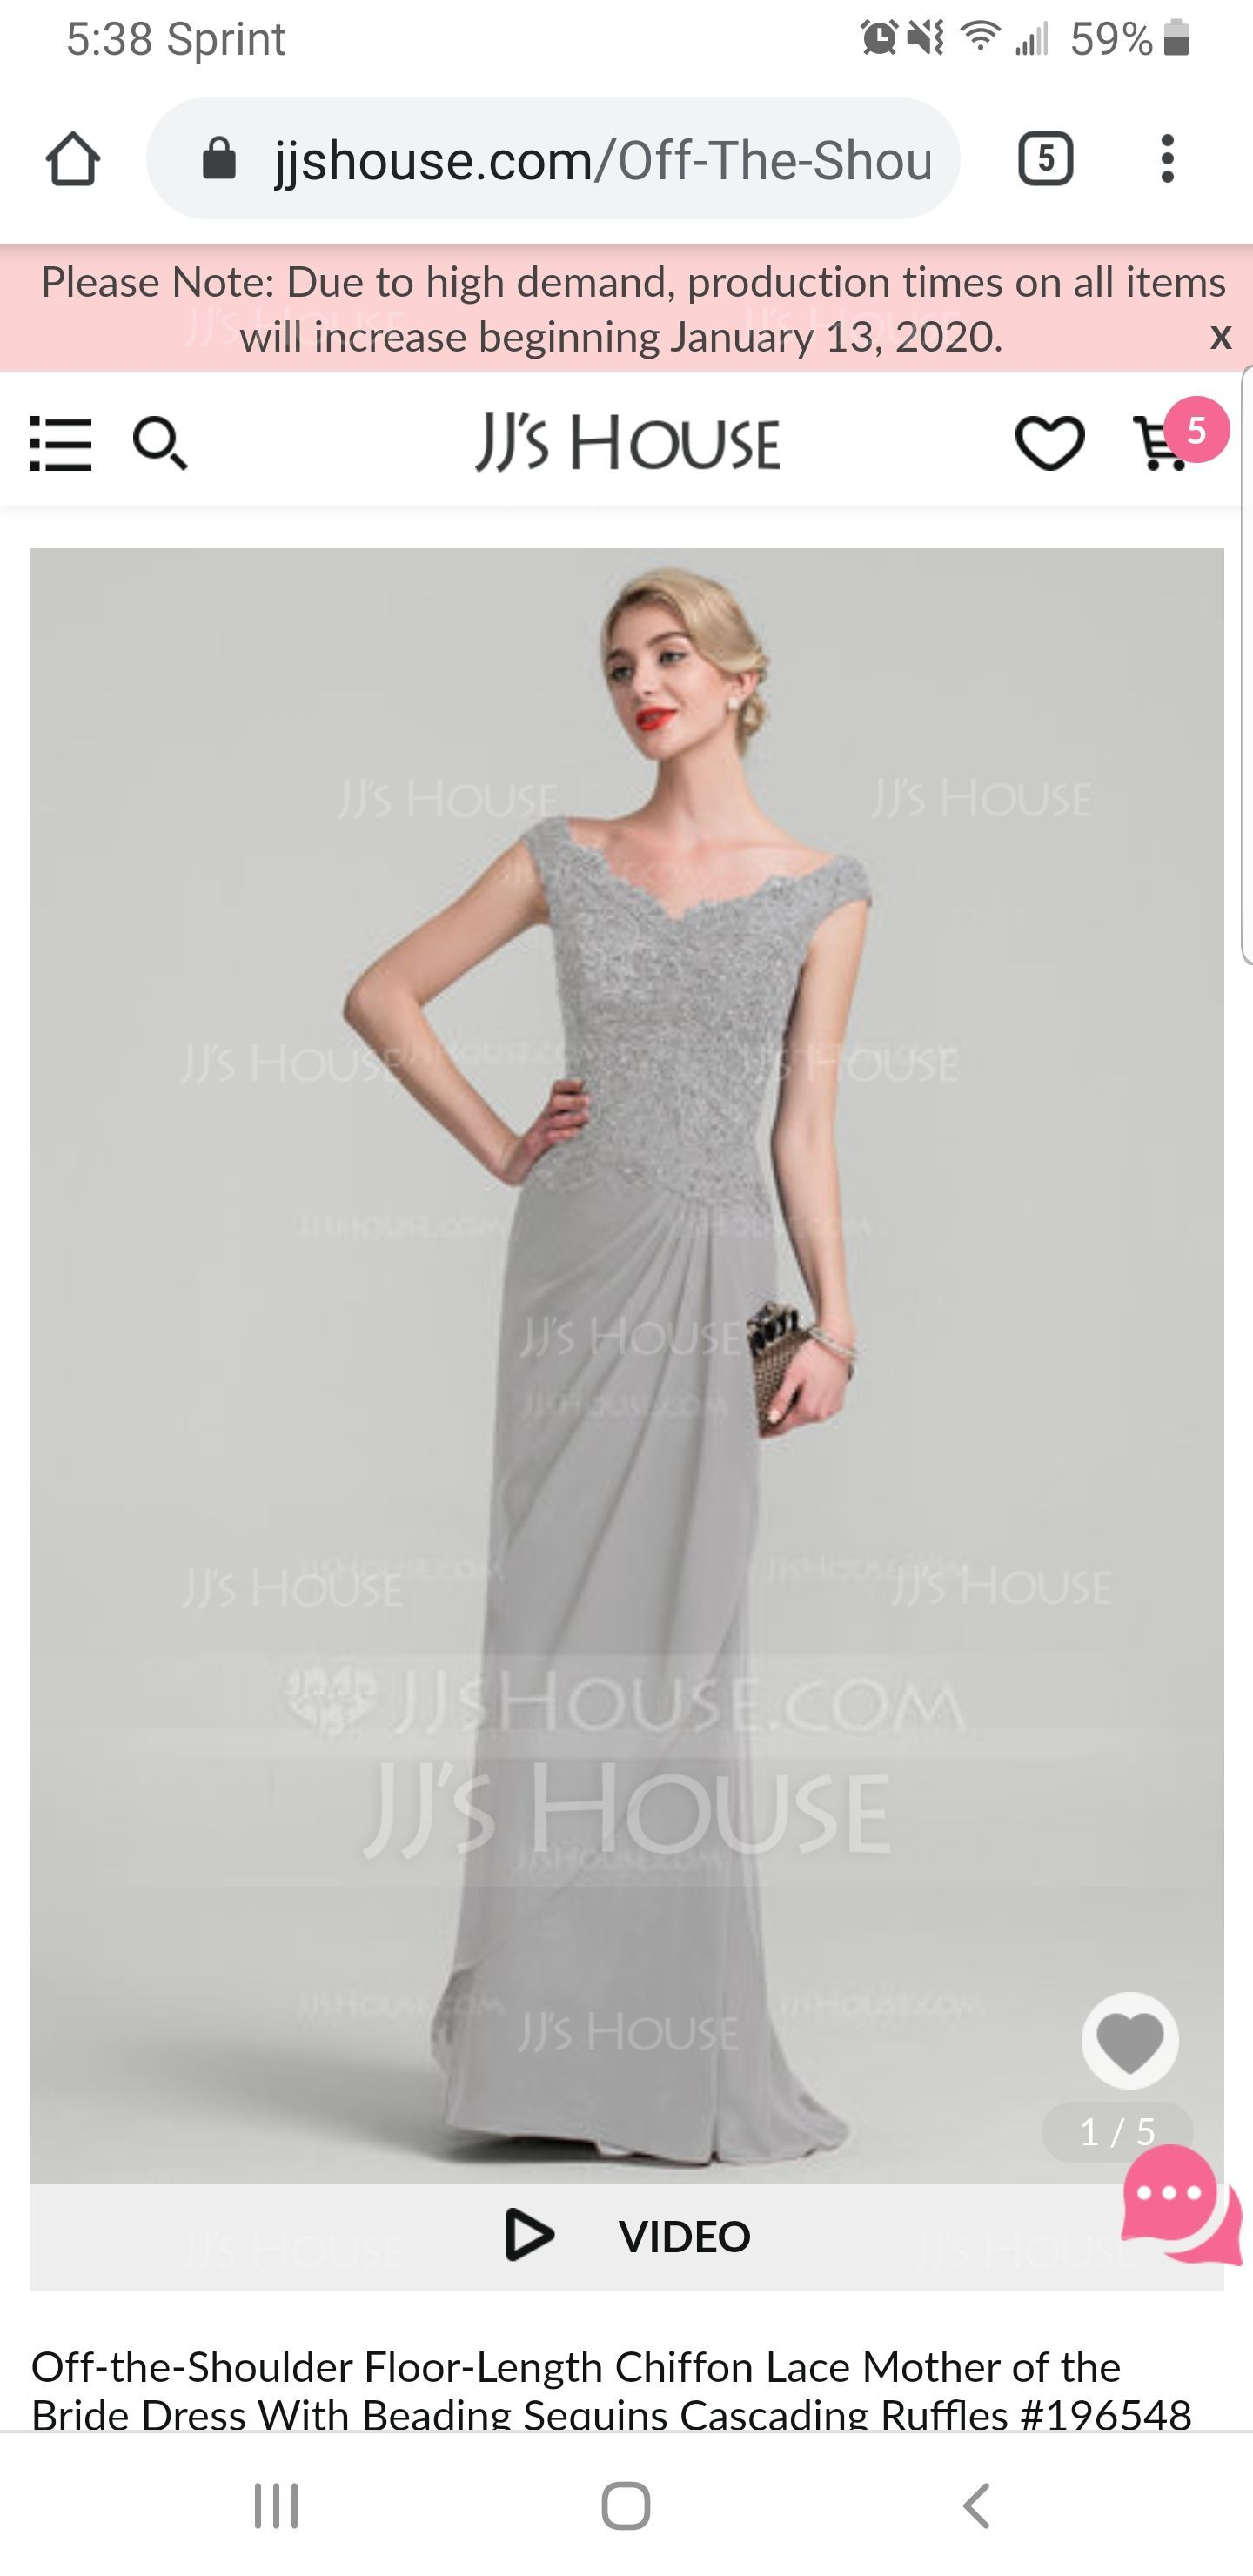 A-Line Off-the-Shoulder Floor-Length Chiffon Lace Evening Dress With Beading Sequins Cascading Ruffles (017130696)